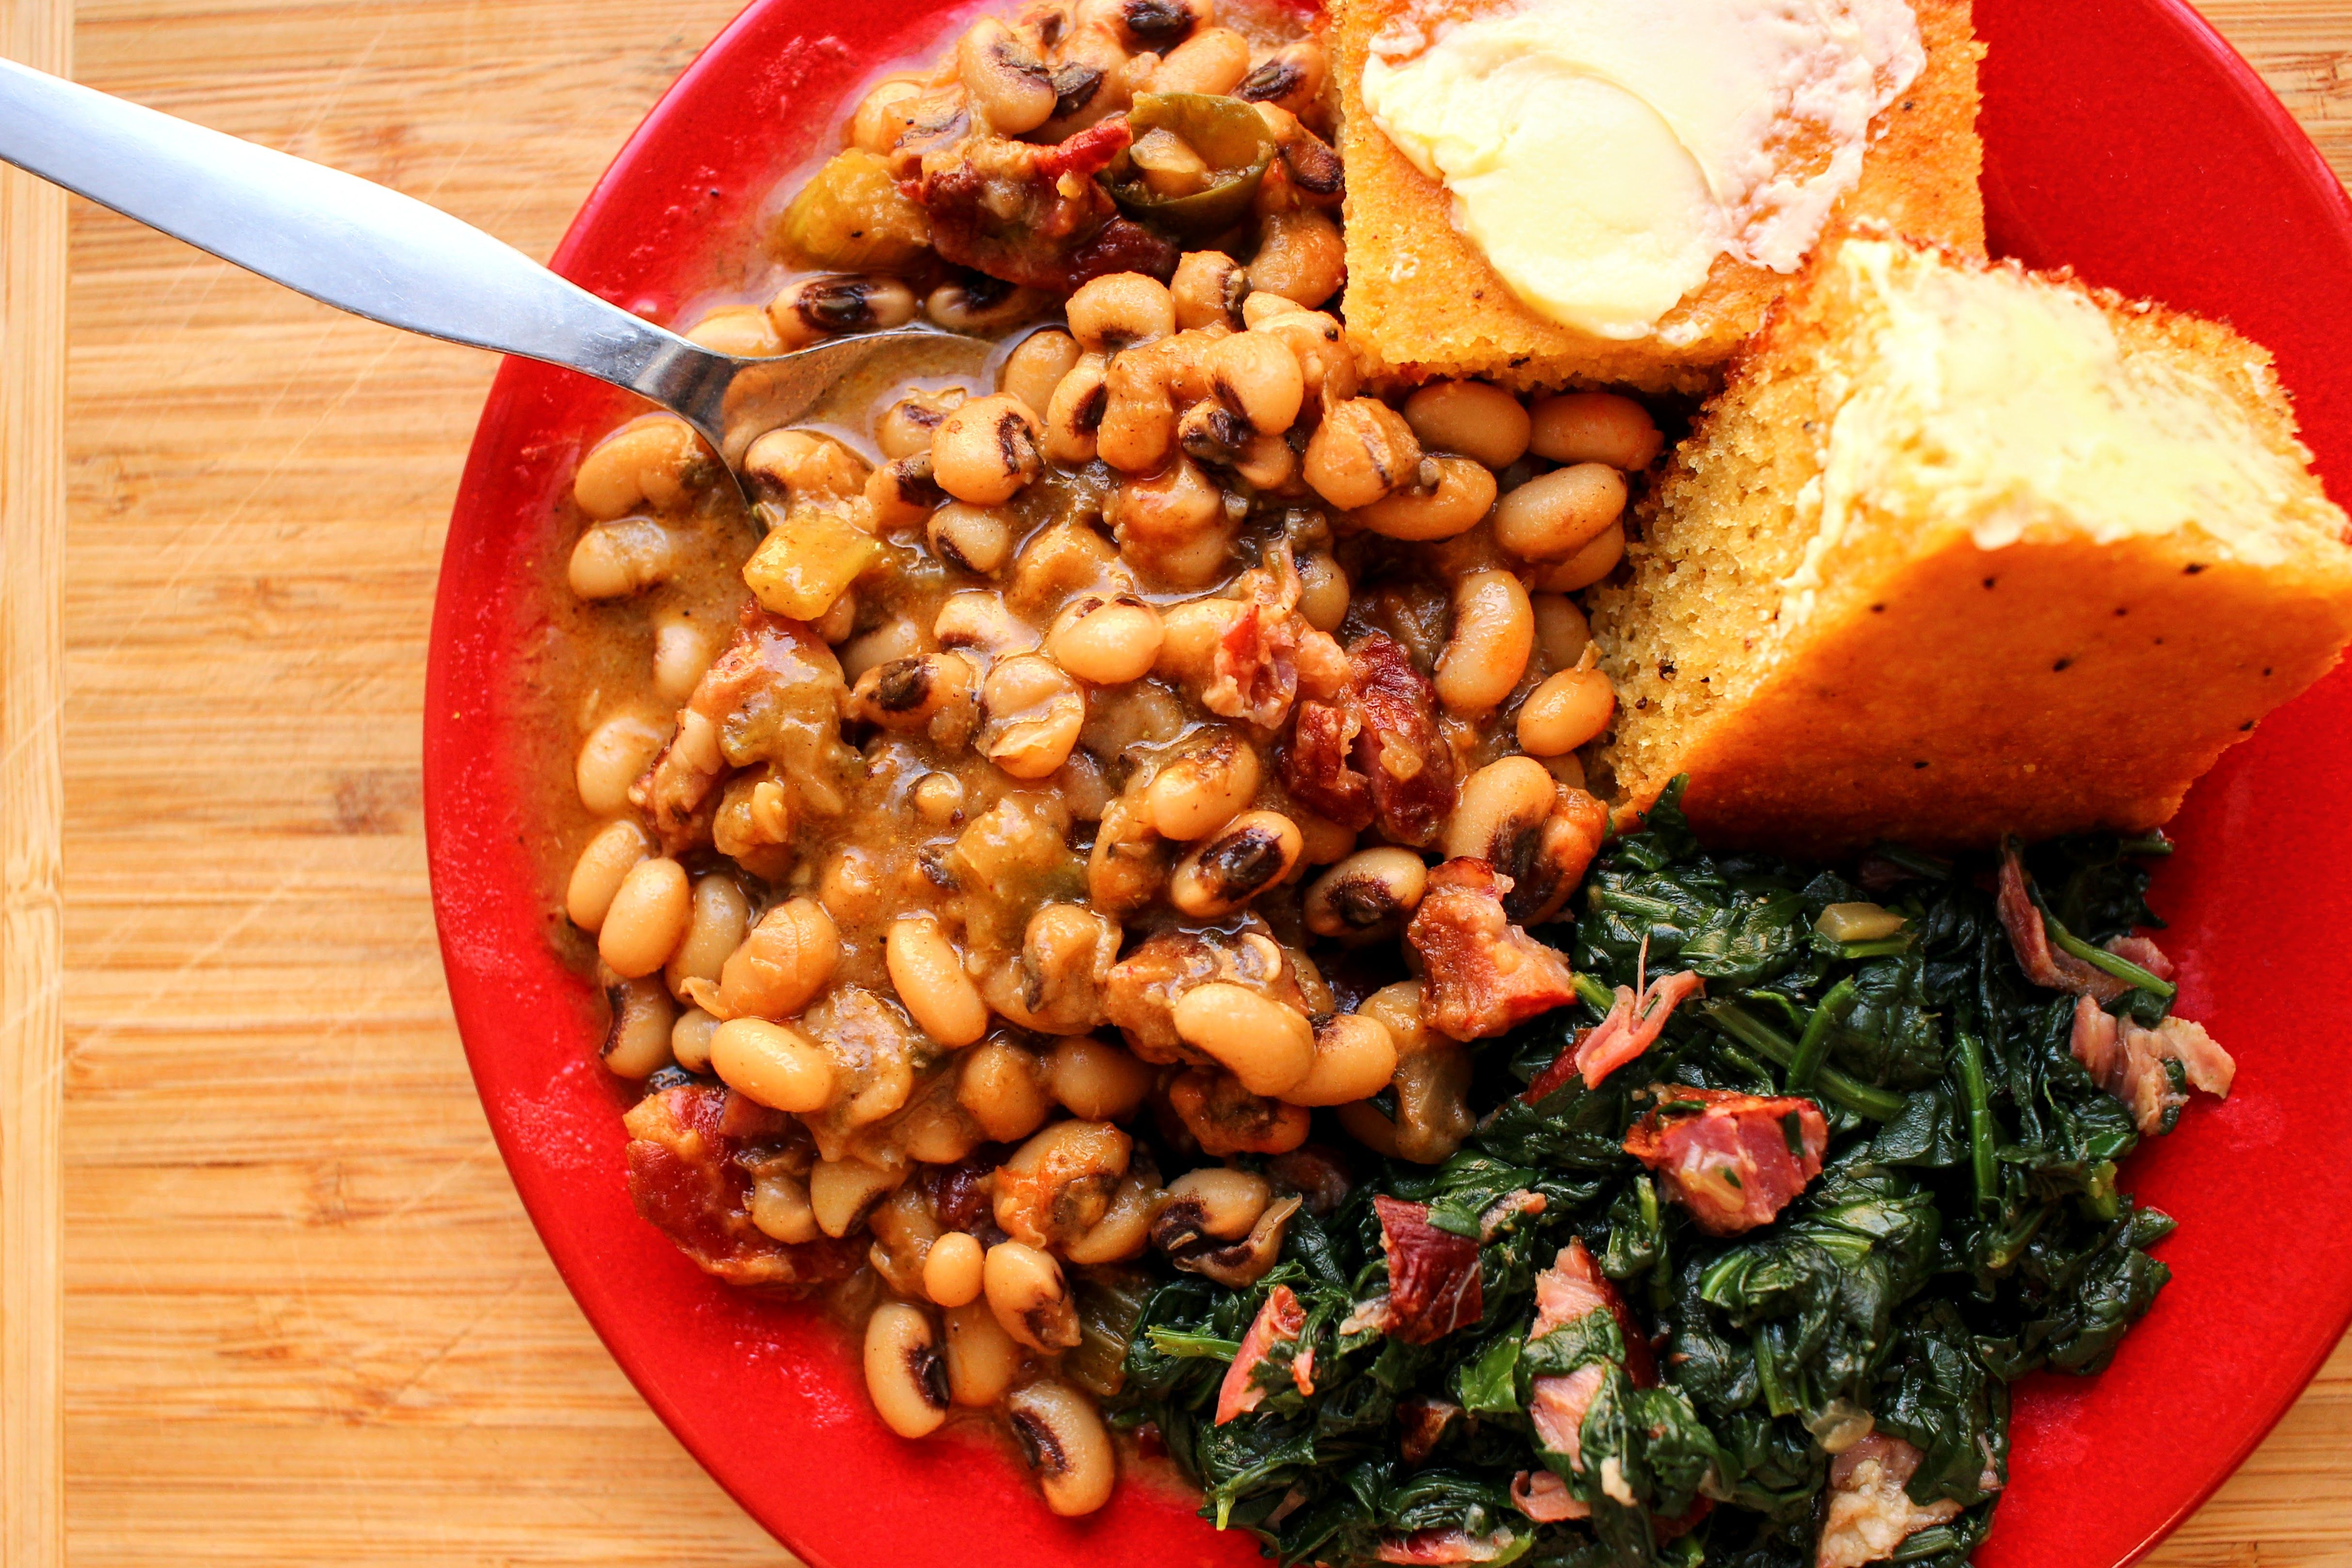 Best New Year S Black Eyed Peas Recipe How To Make New Year S Black Eyed Peas For Good Luck